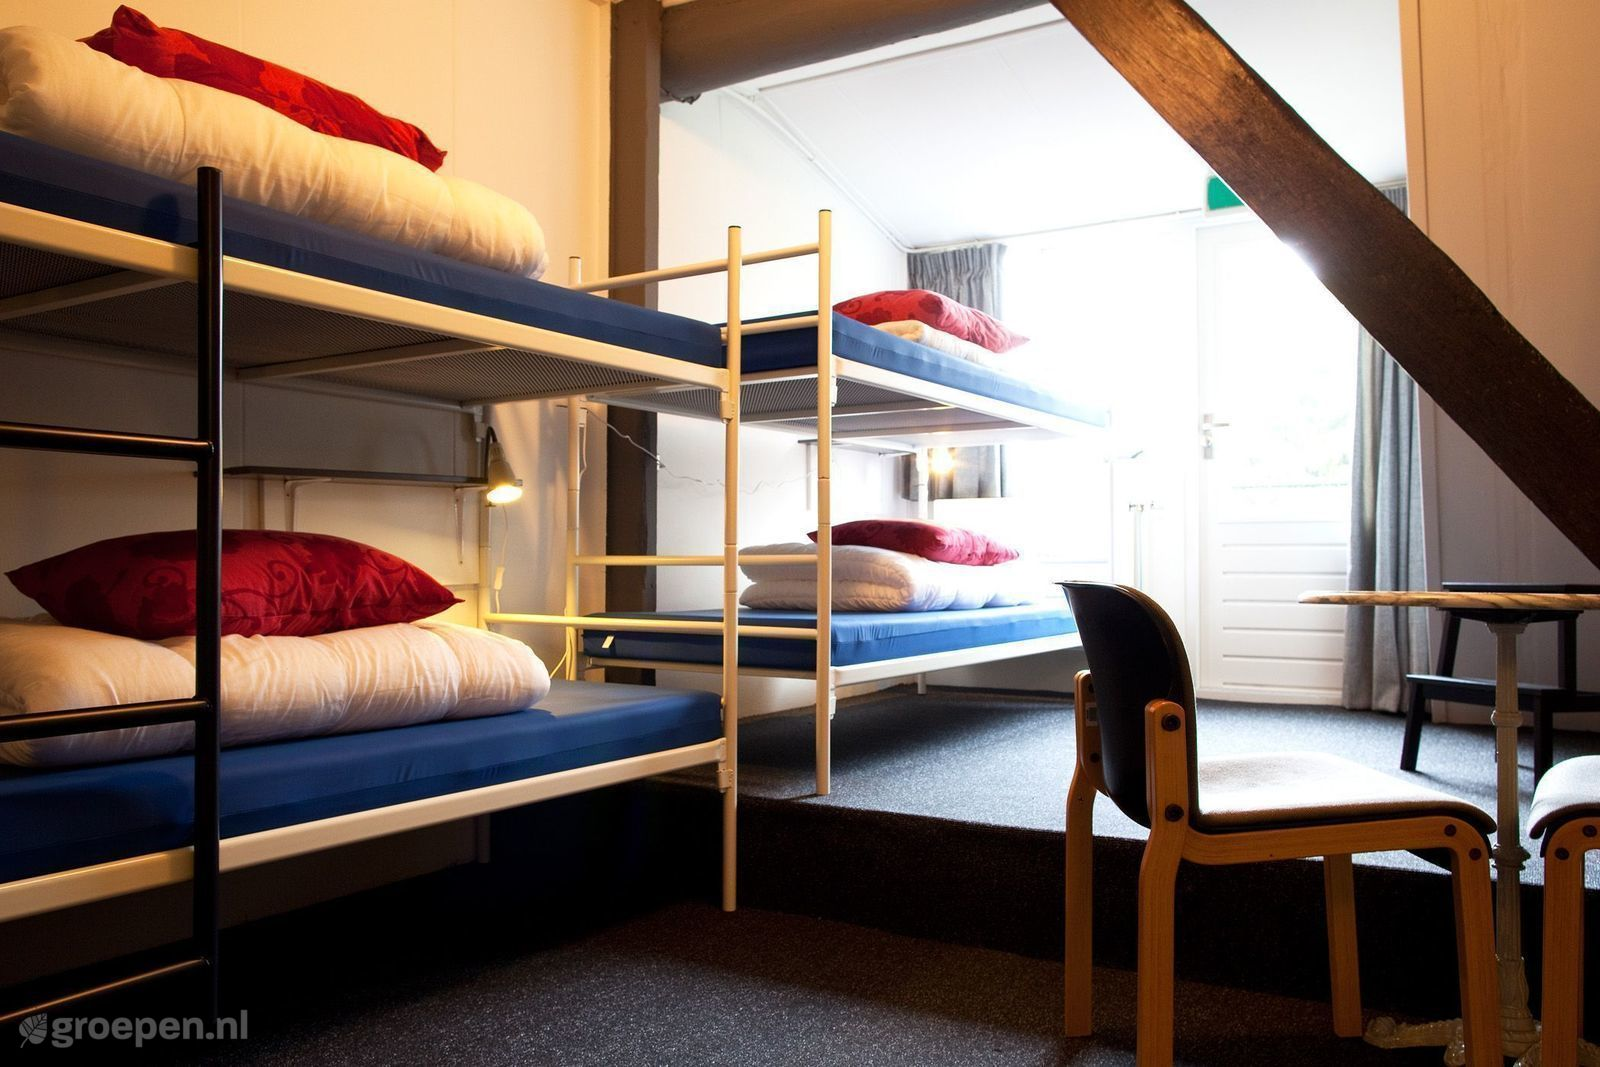 Group accommodation Wehe den Hoorn